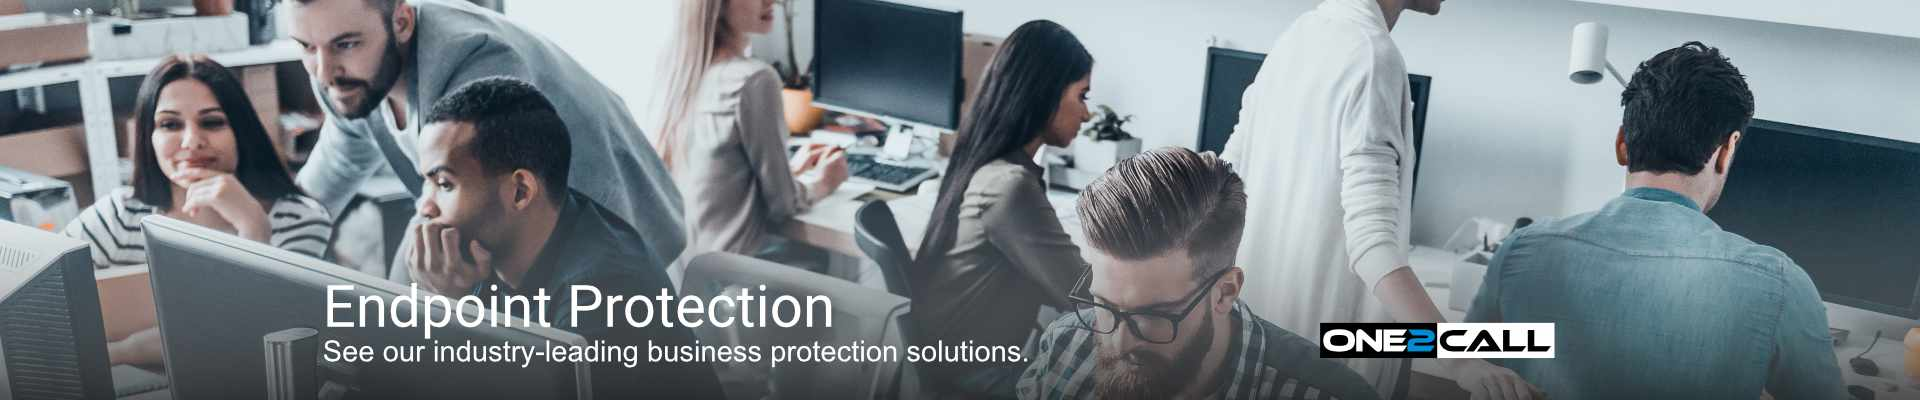 Endpoint Protection - See our industry-leading business protection solutions.